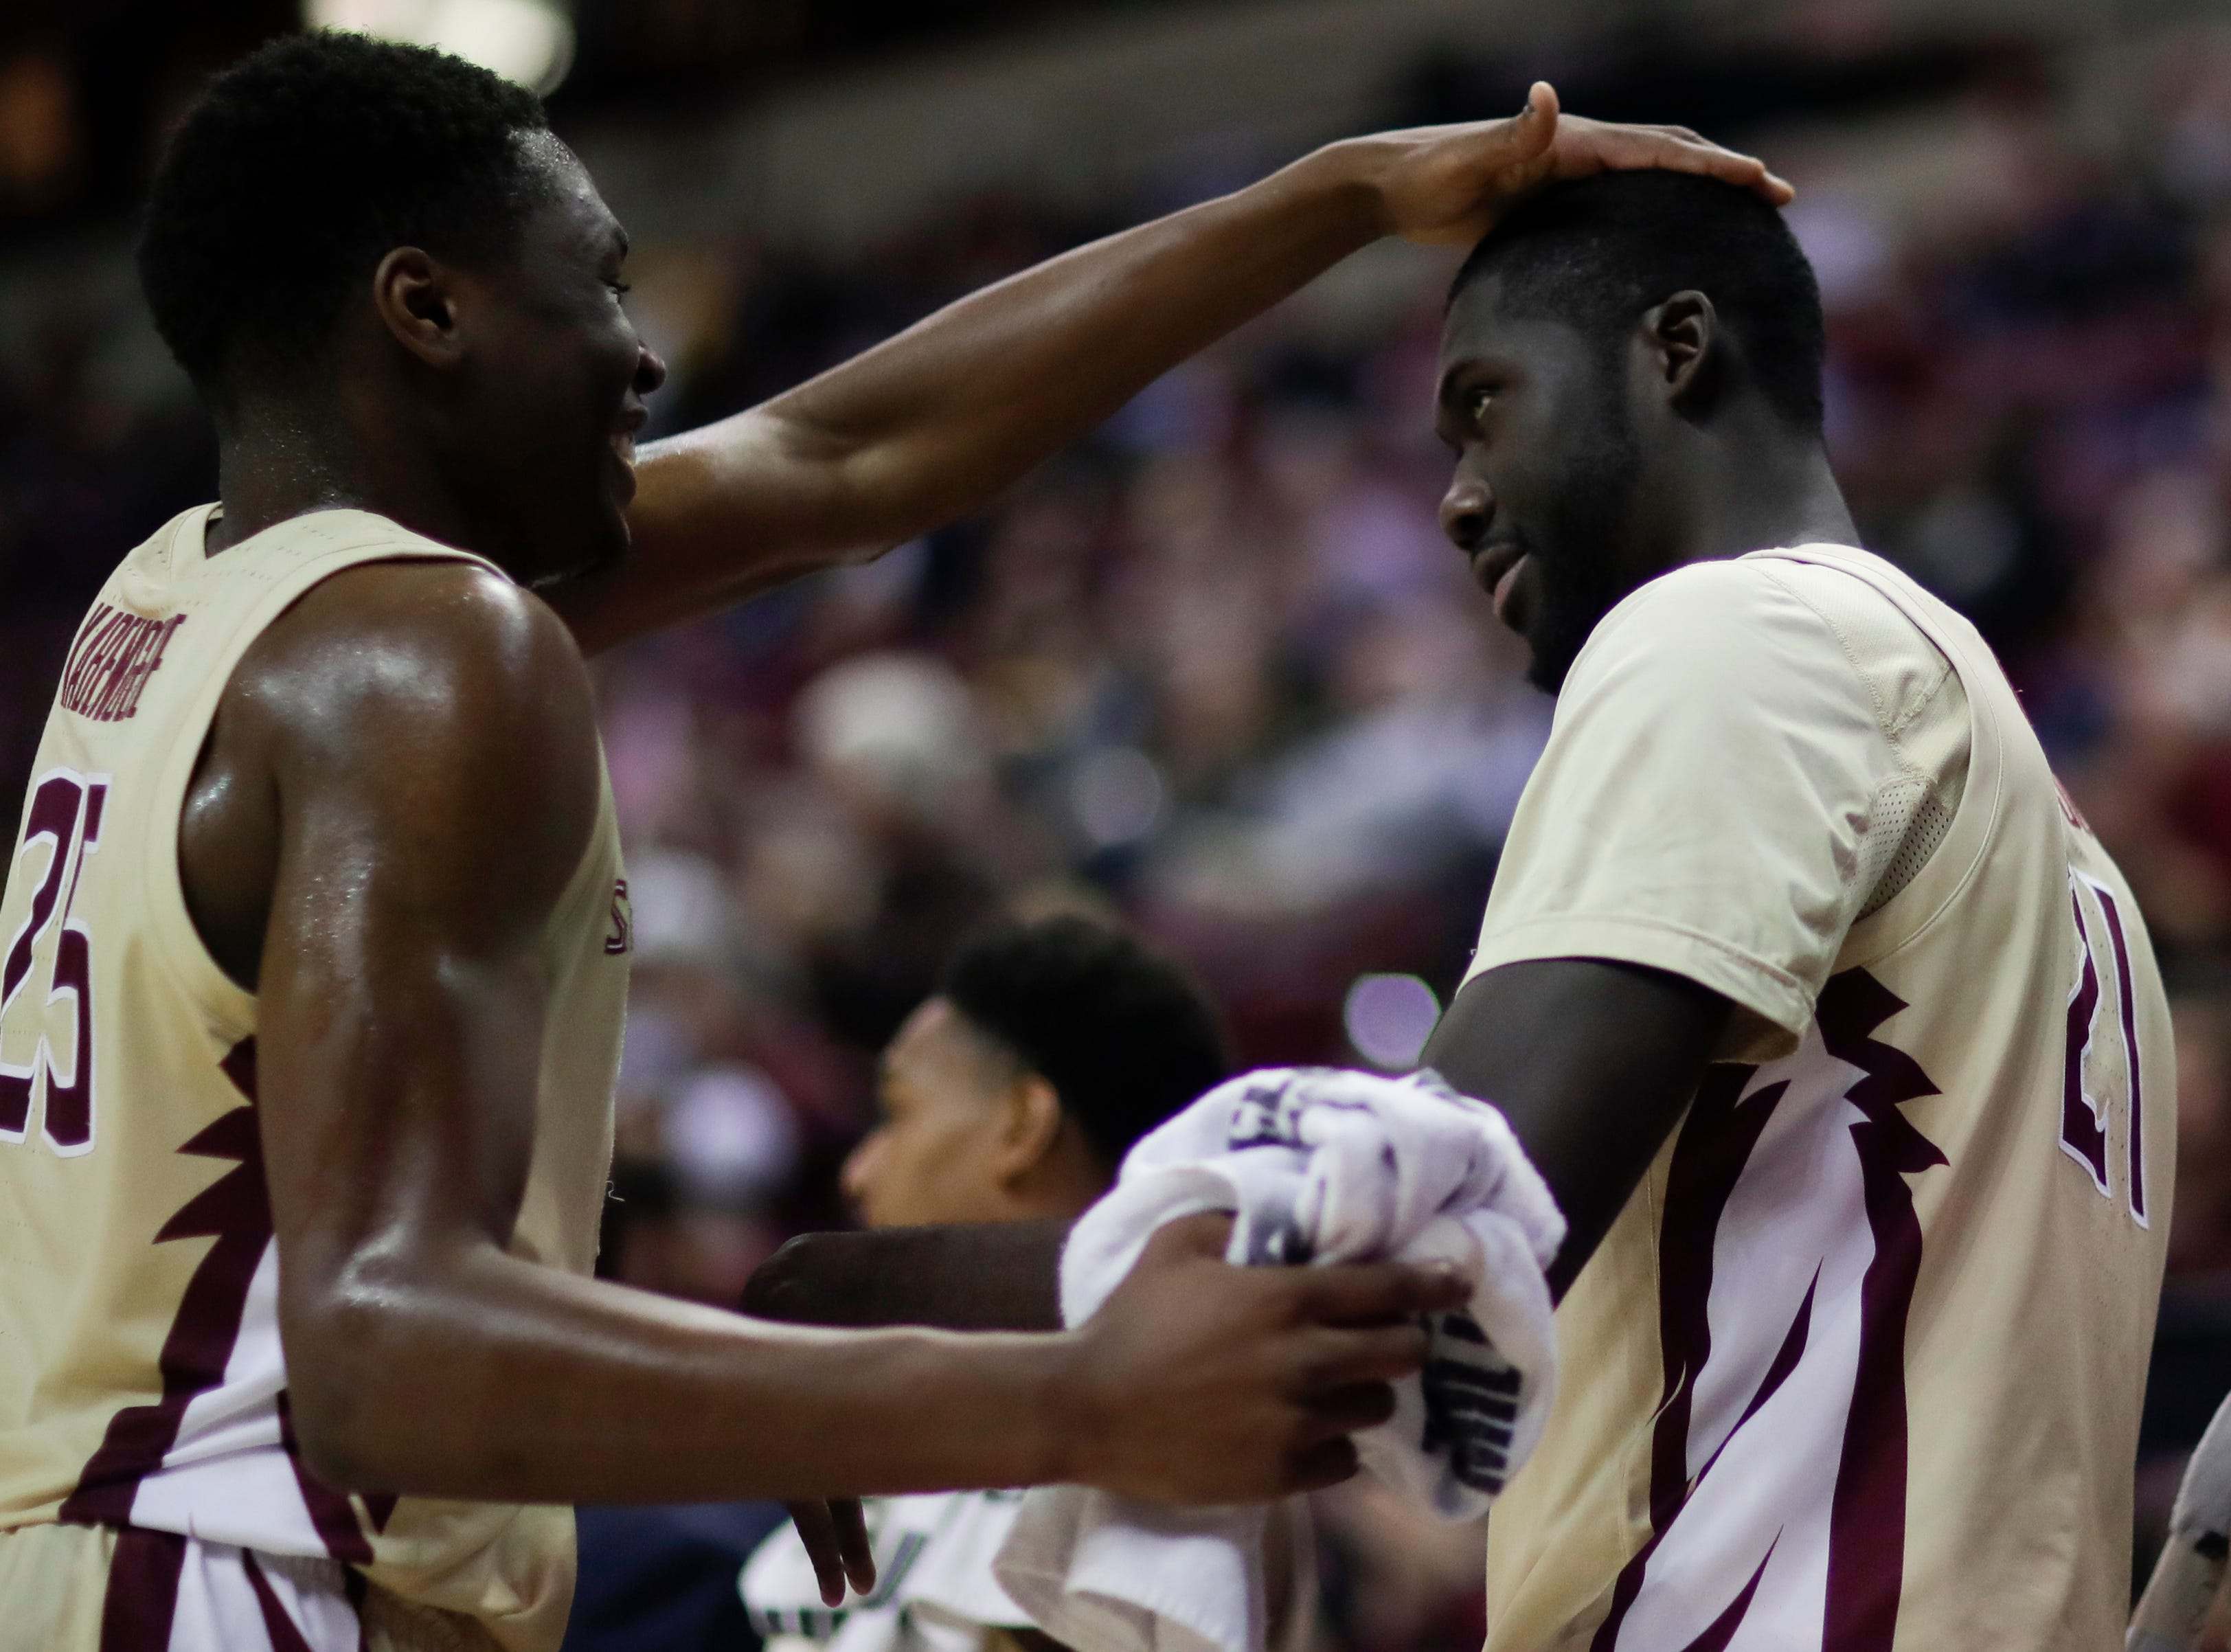 Florida State Seminoles forward Mfiondu Kabengele (25) taps Florida State Seminoles center Christ Koumadje (21) on the head after Koumadje finishes the game with his first career double double during a game between FSU and Wake Forest at the Donald L. Tucker Civic Center Wednesday, Feb. 13, 2019.